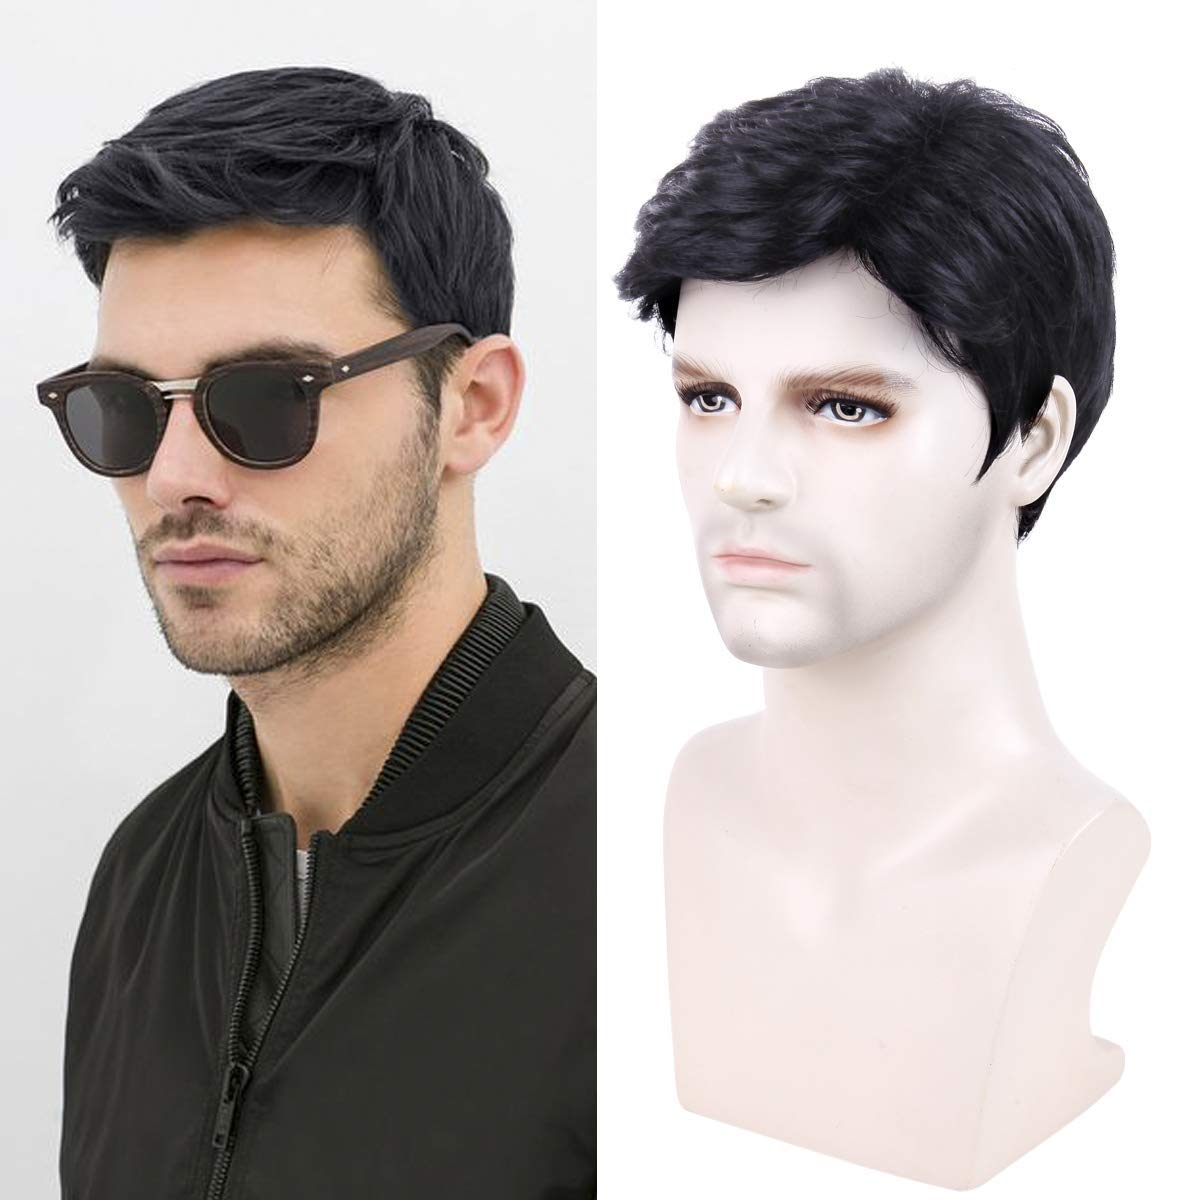 Majik Hair Wig System For Men And Boys Full Head Wig 40 Grams Pack Of 1 (Black, Free Size)